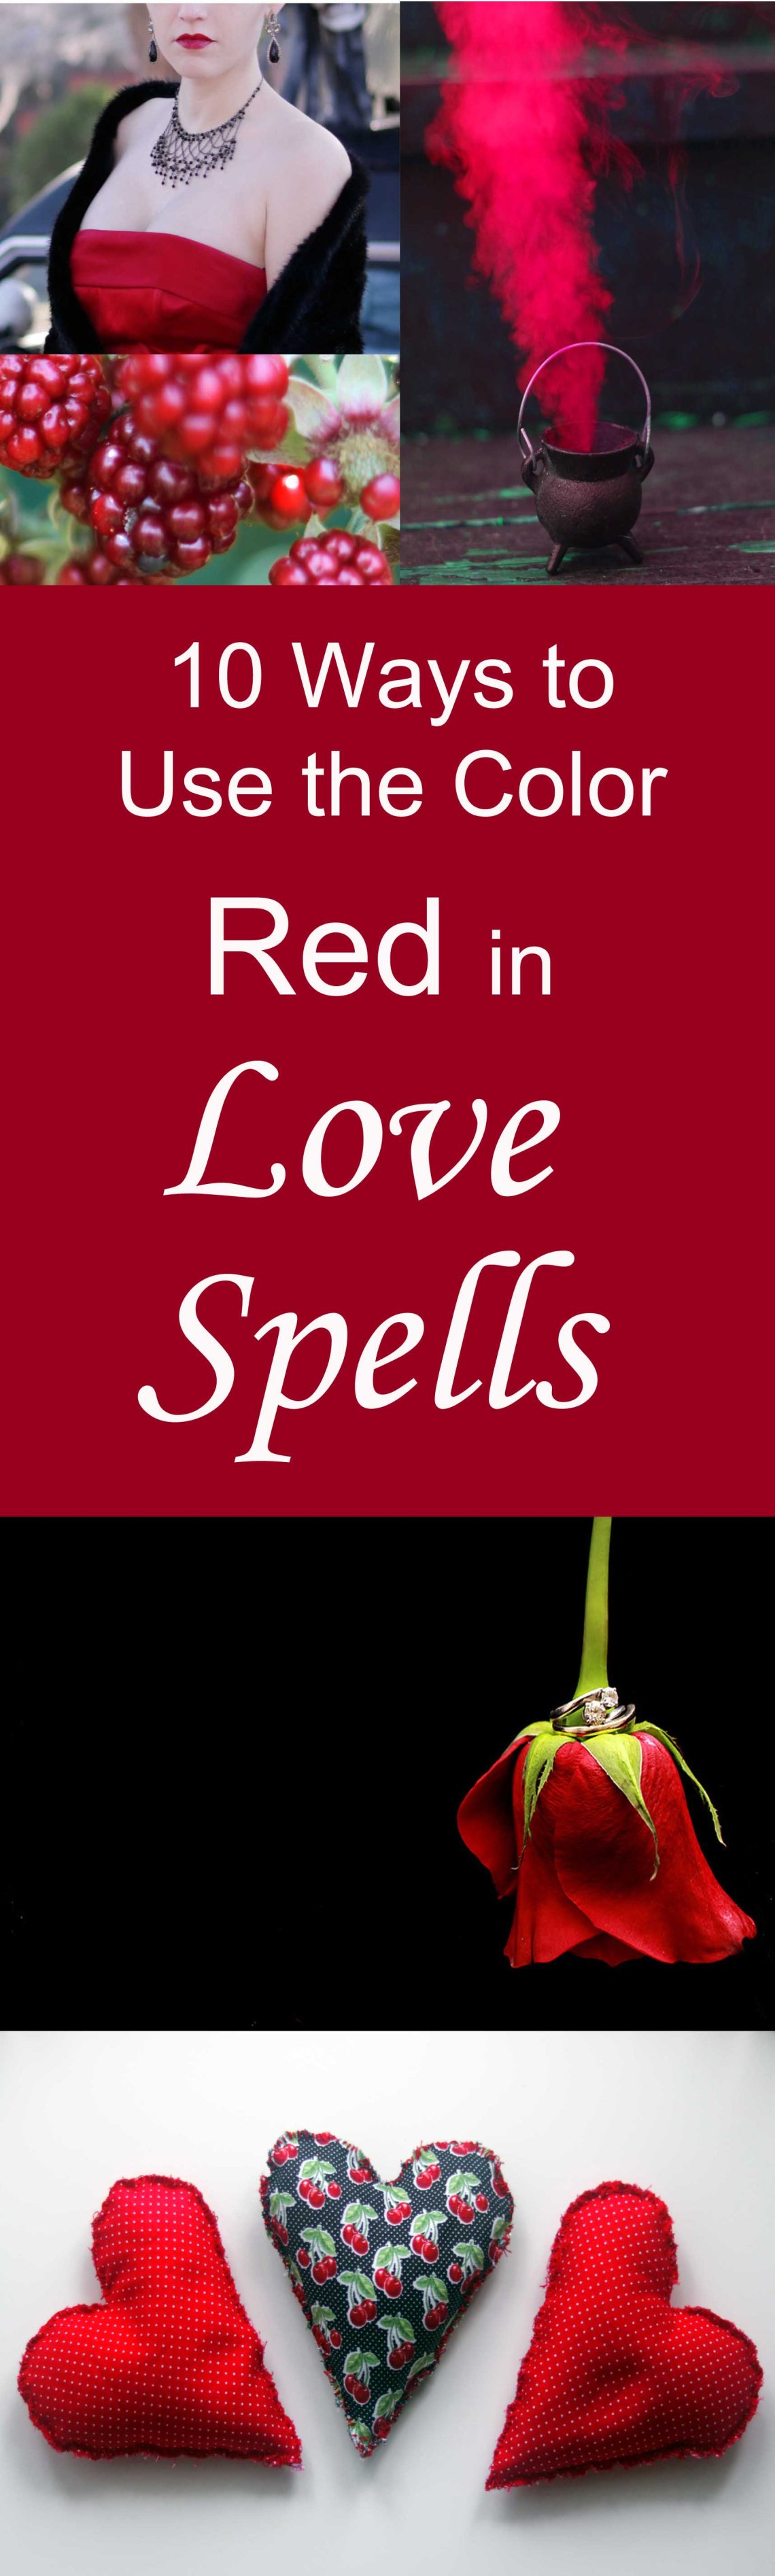 10 Ways to Use the Color Red in Witchcraft and Love Spells